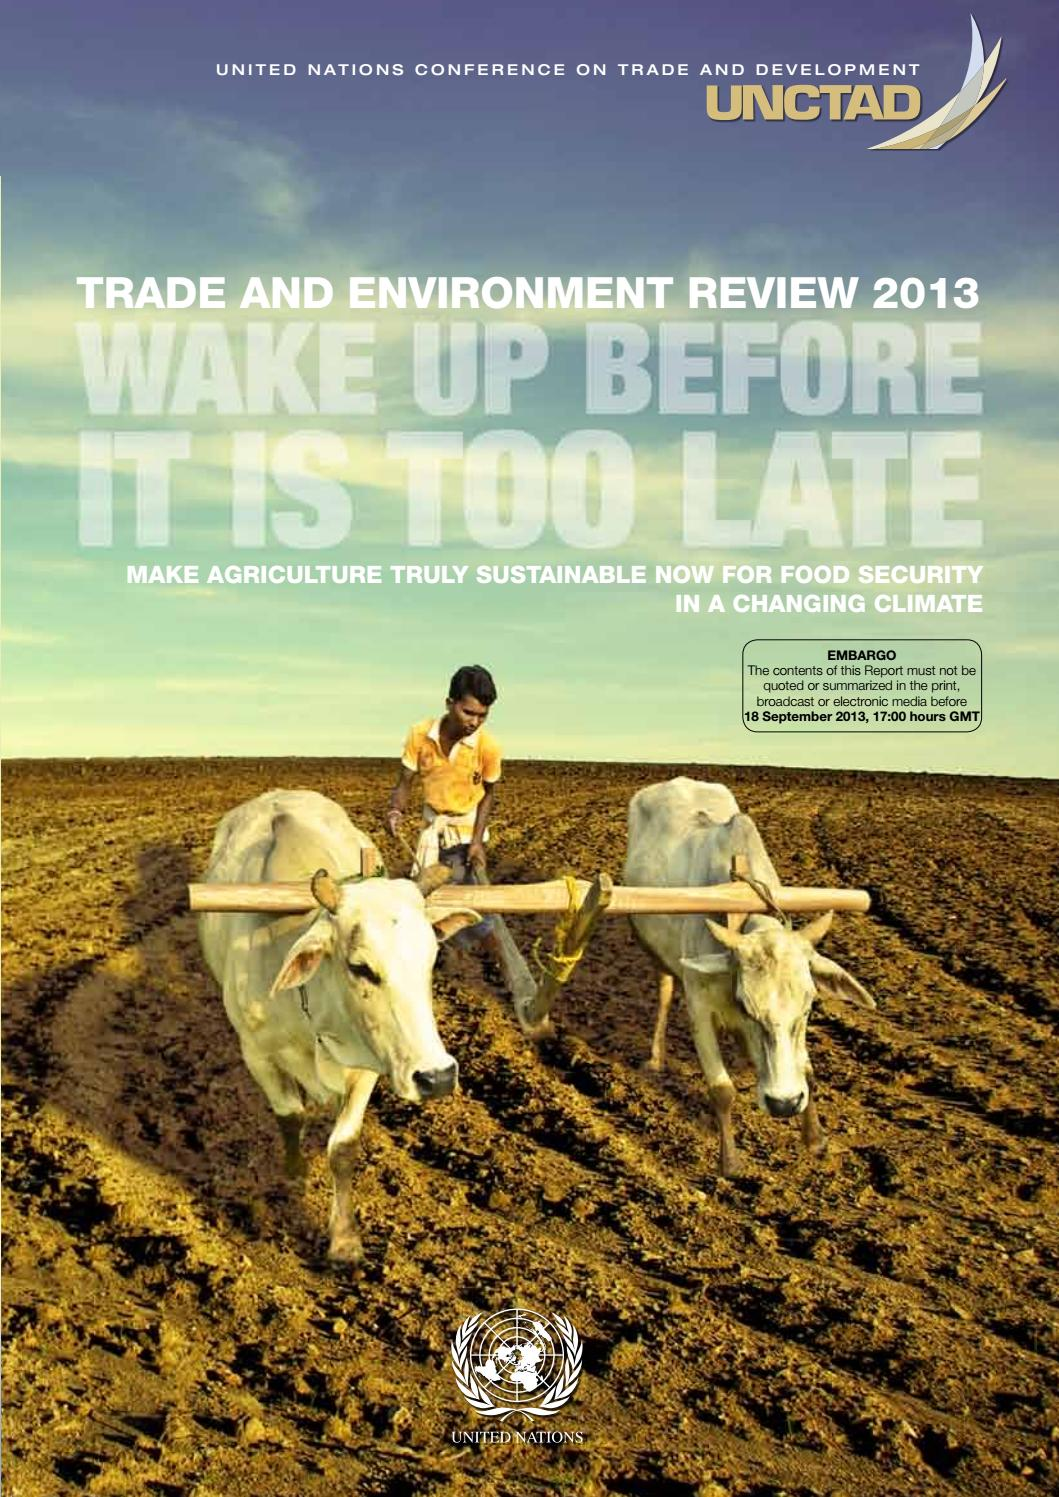 Unctad trand and environment review 2013 by funverde - issuu